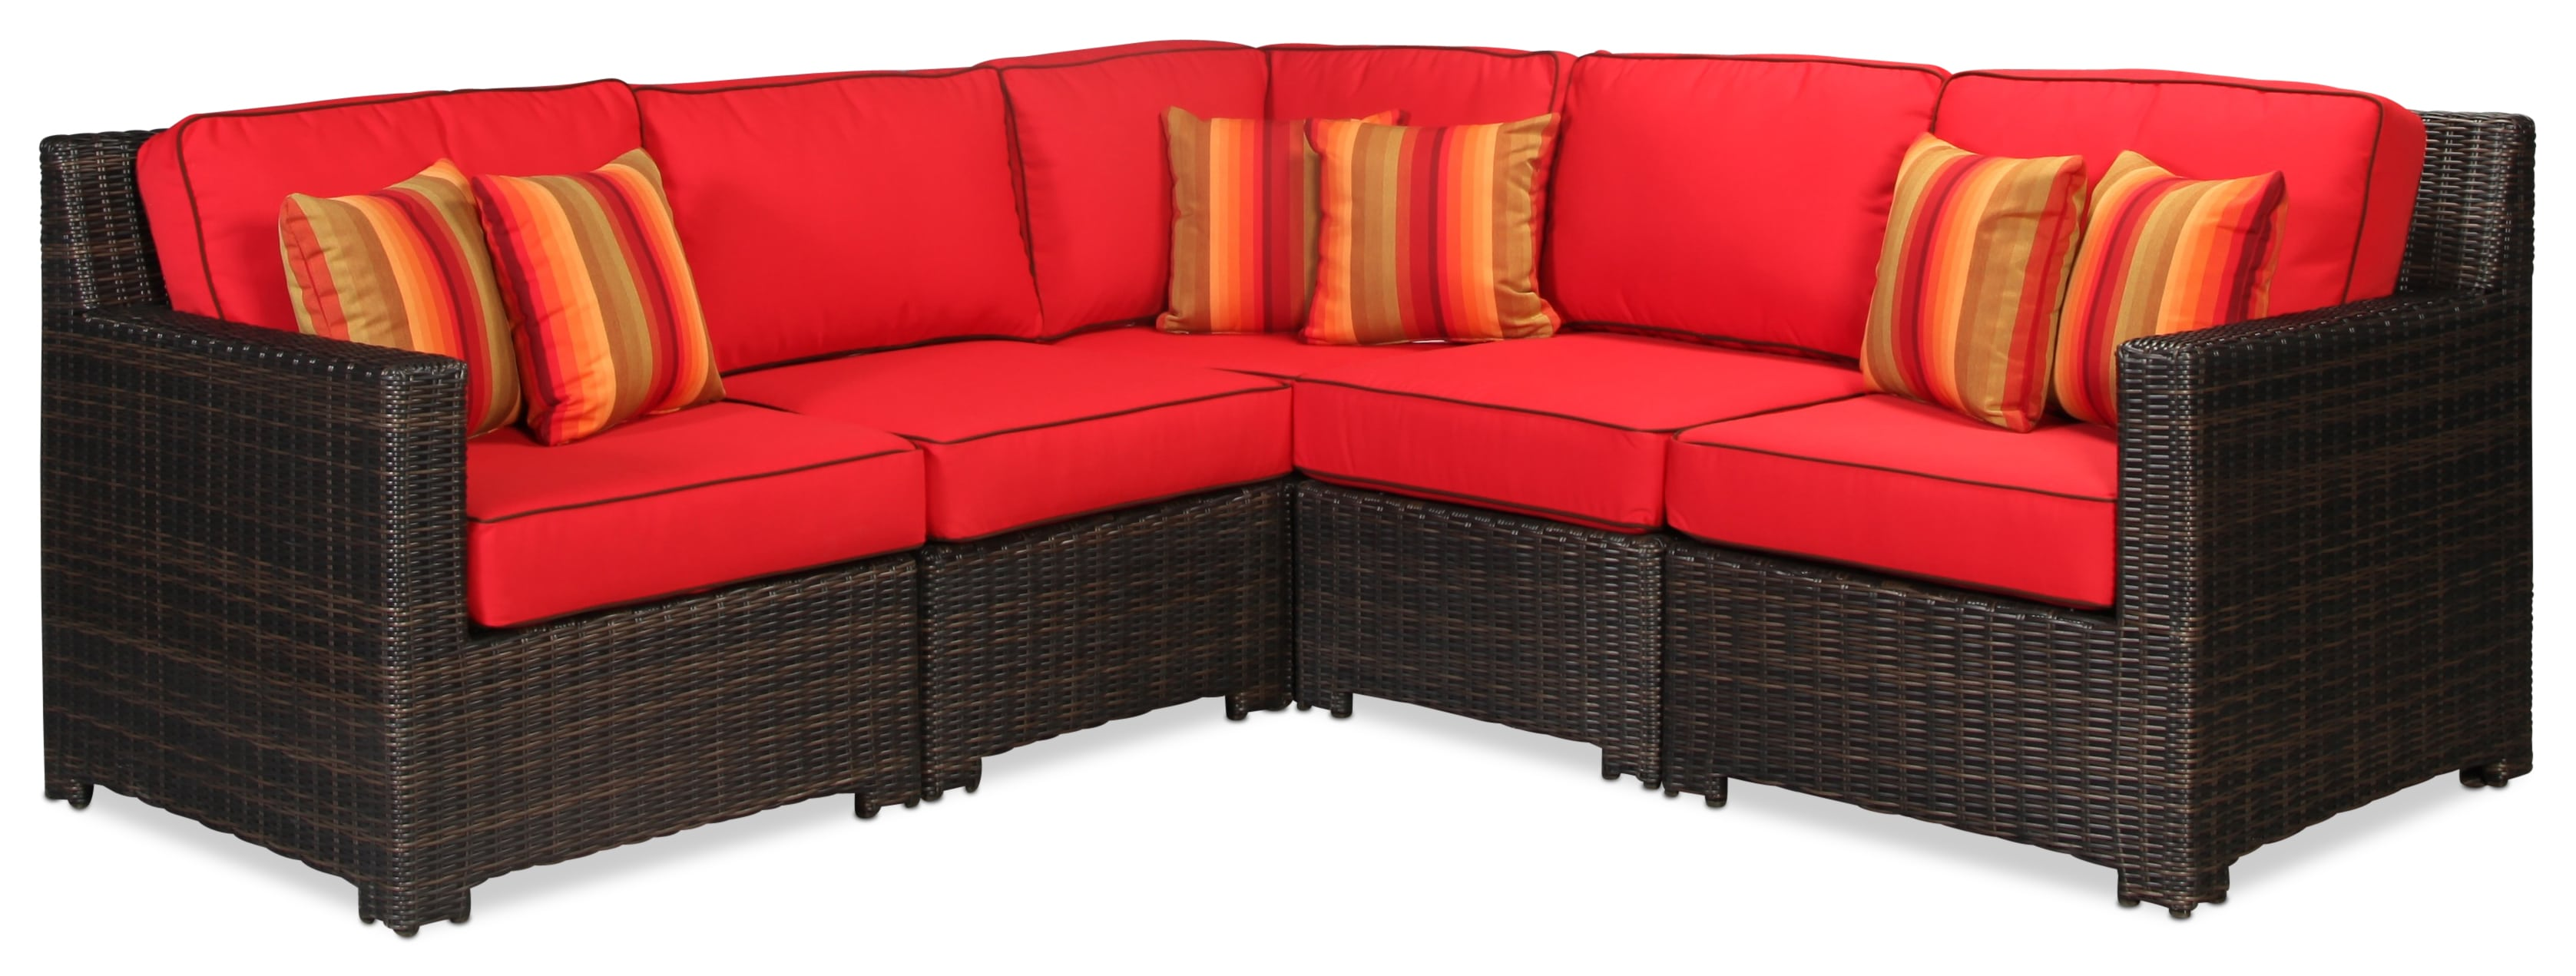 Northport Red 5 Piece Sectional